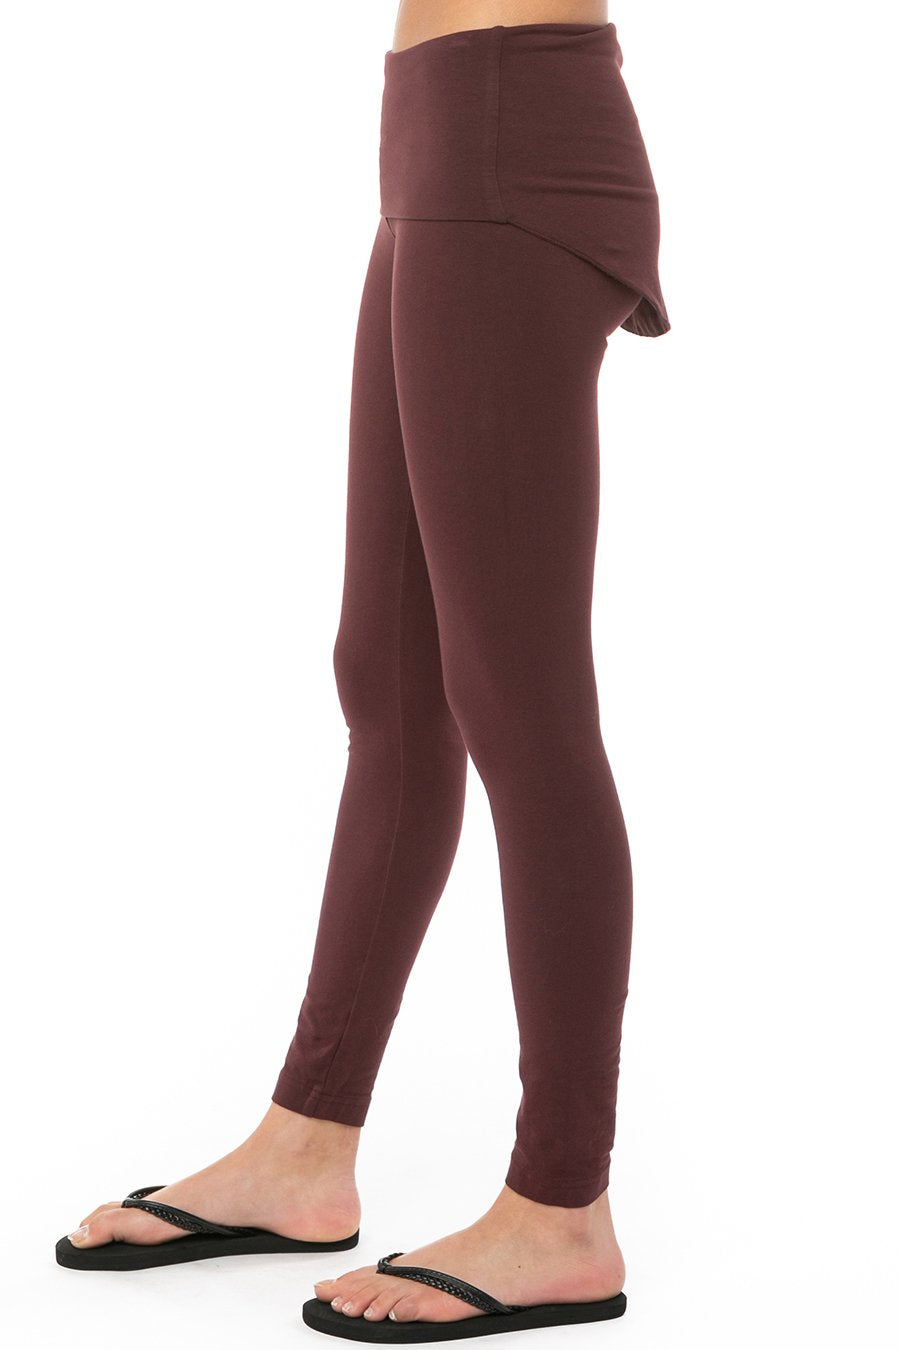 Hard Tail Forever Booty Cover Rolldown Ankle Legging - Red Plum - S